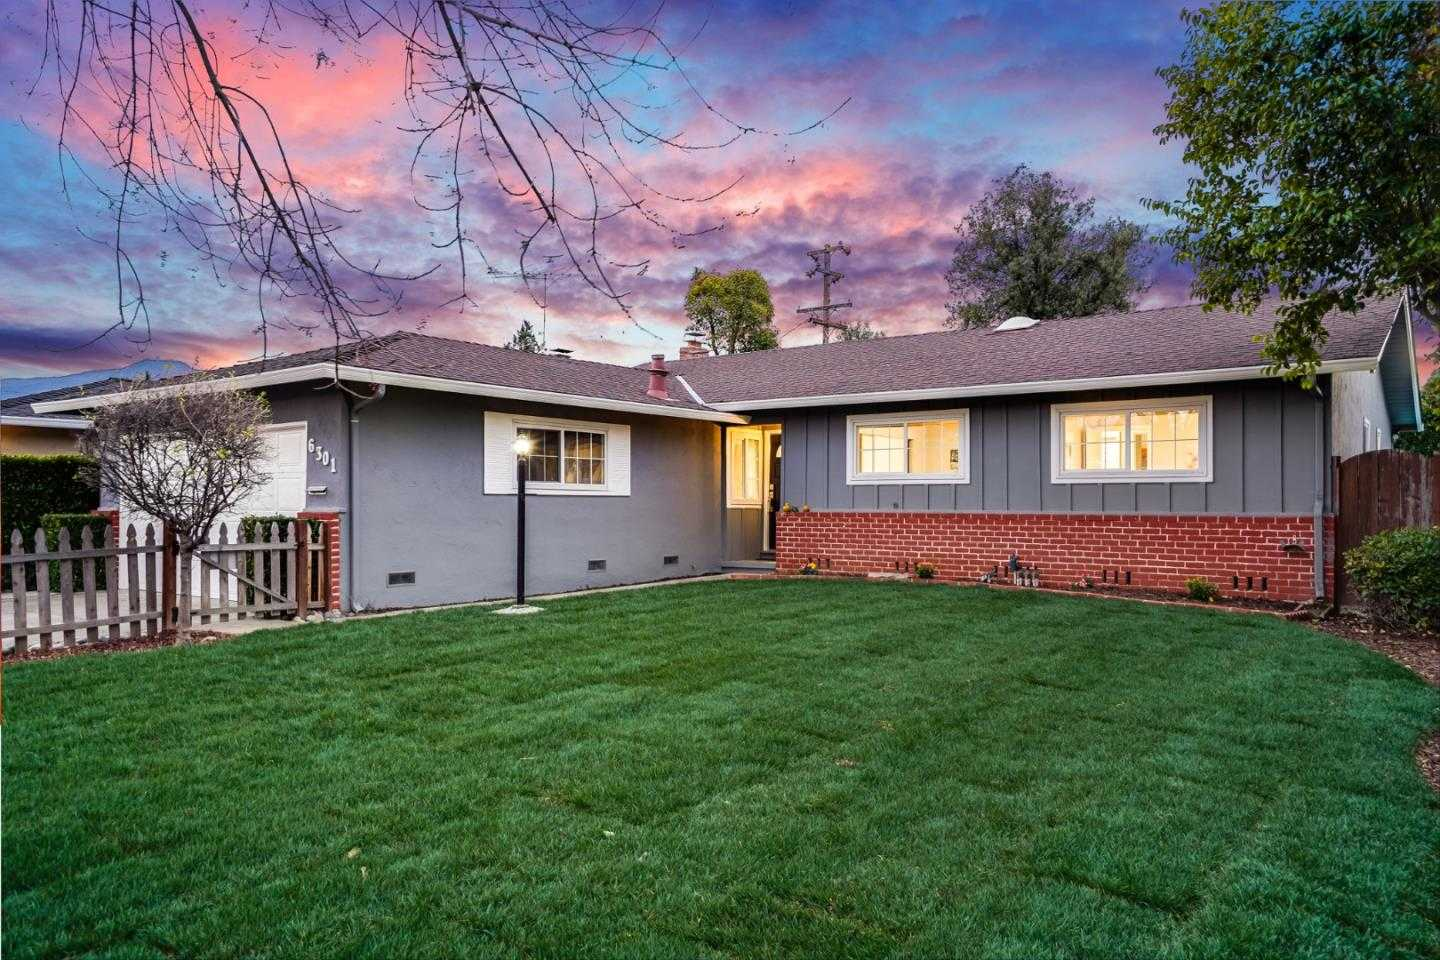 $1,188,000 - 3Br/2Ba -  for Sale in San Jose